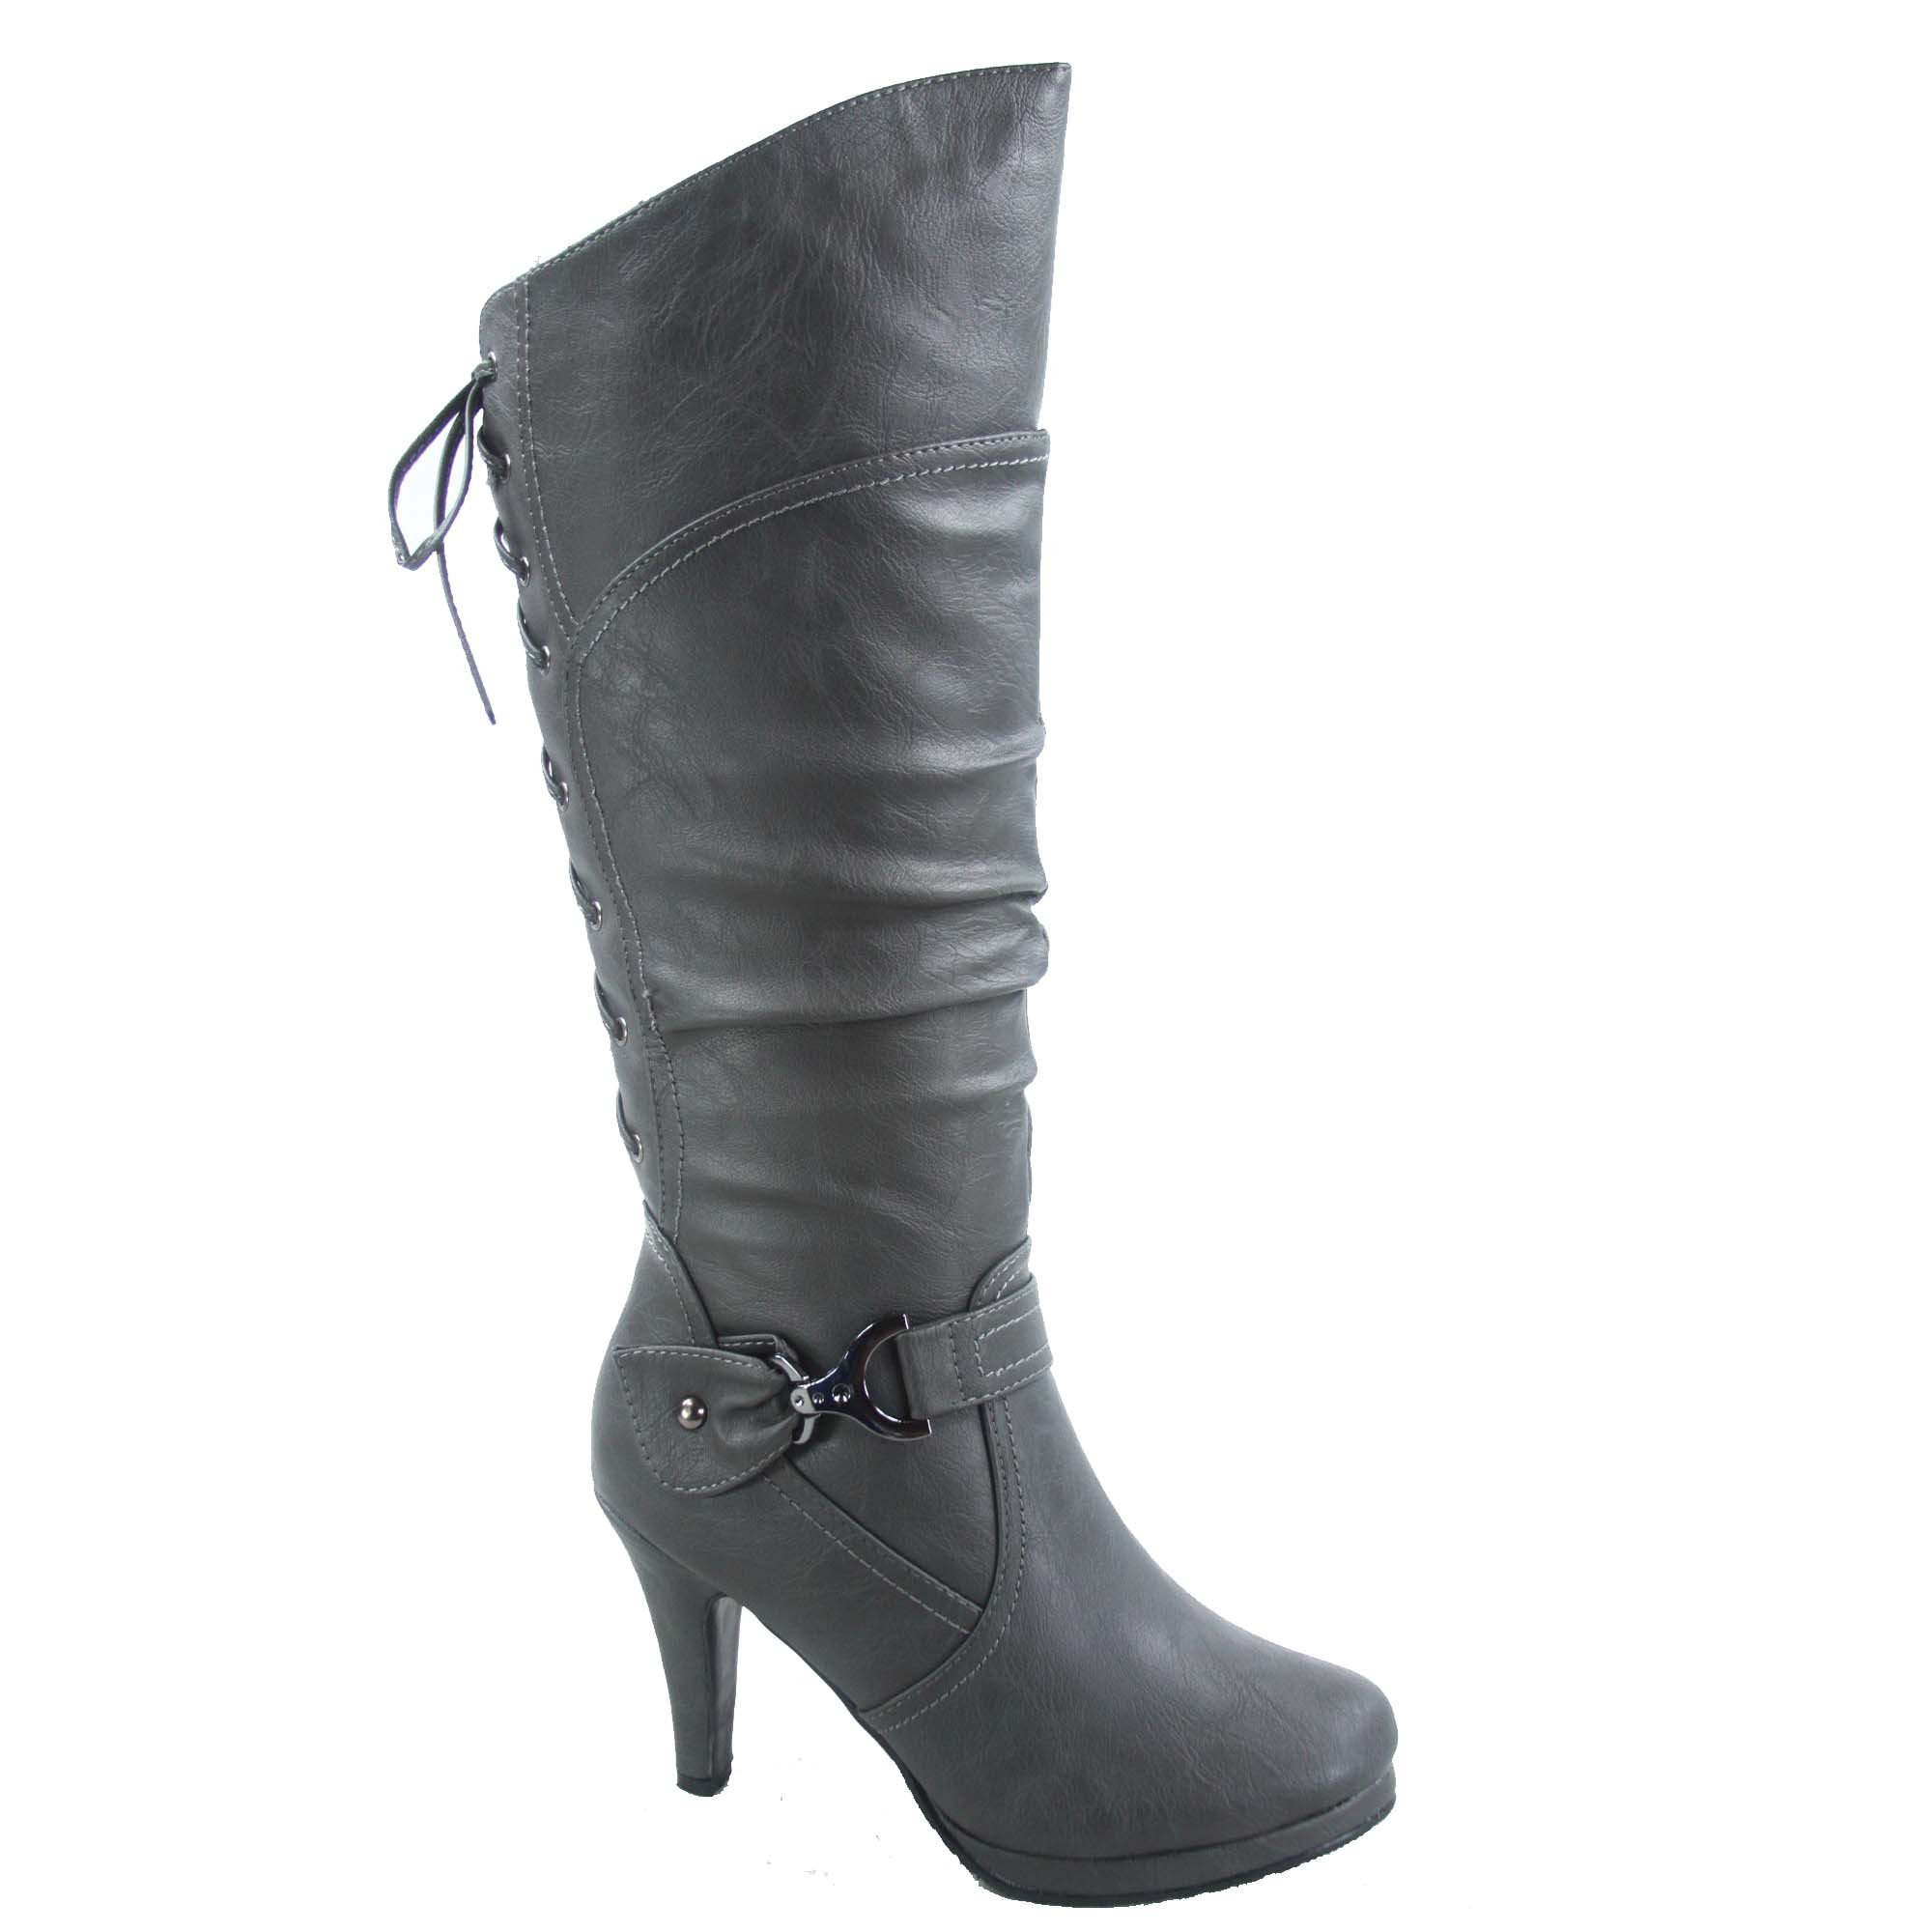 Top Moda Page-65 Women's Sexy Back Lace Up Side Zipper Low Heel Platform Knee High Boots Shoes (8.5, Grey)